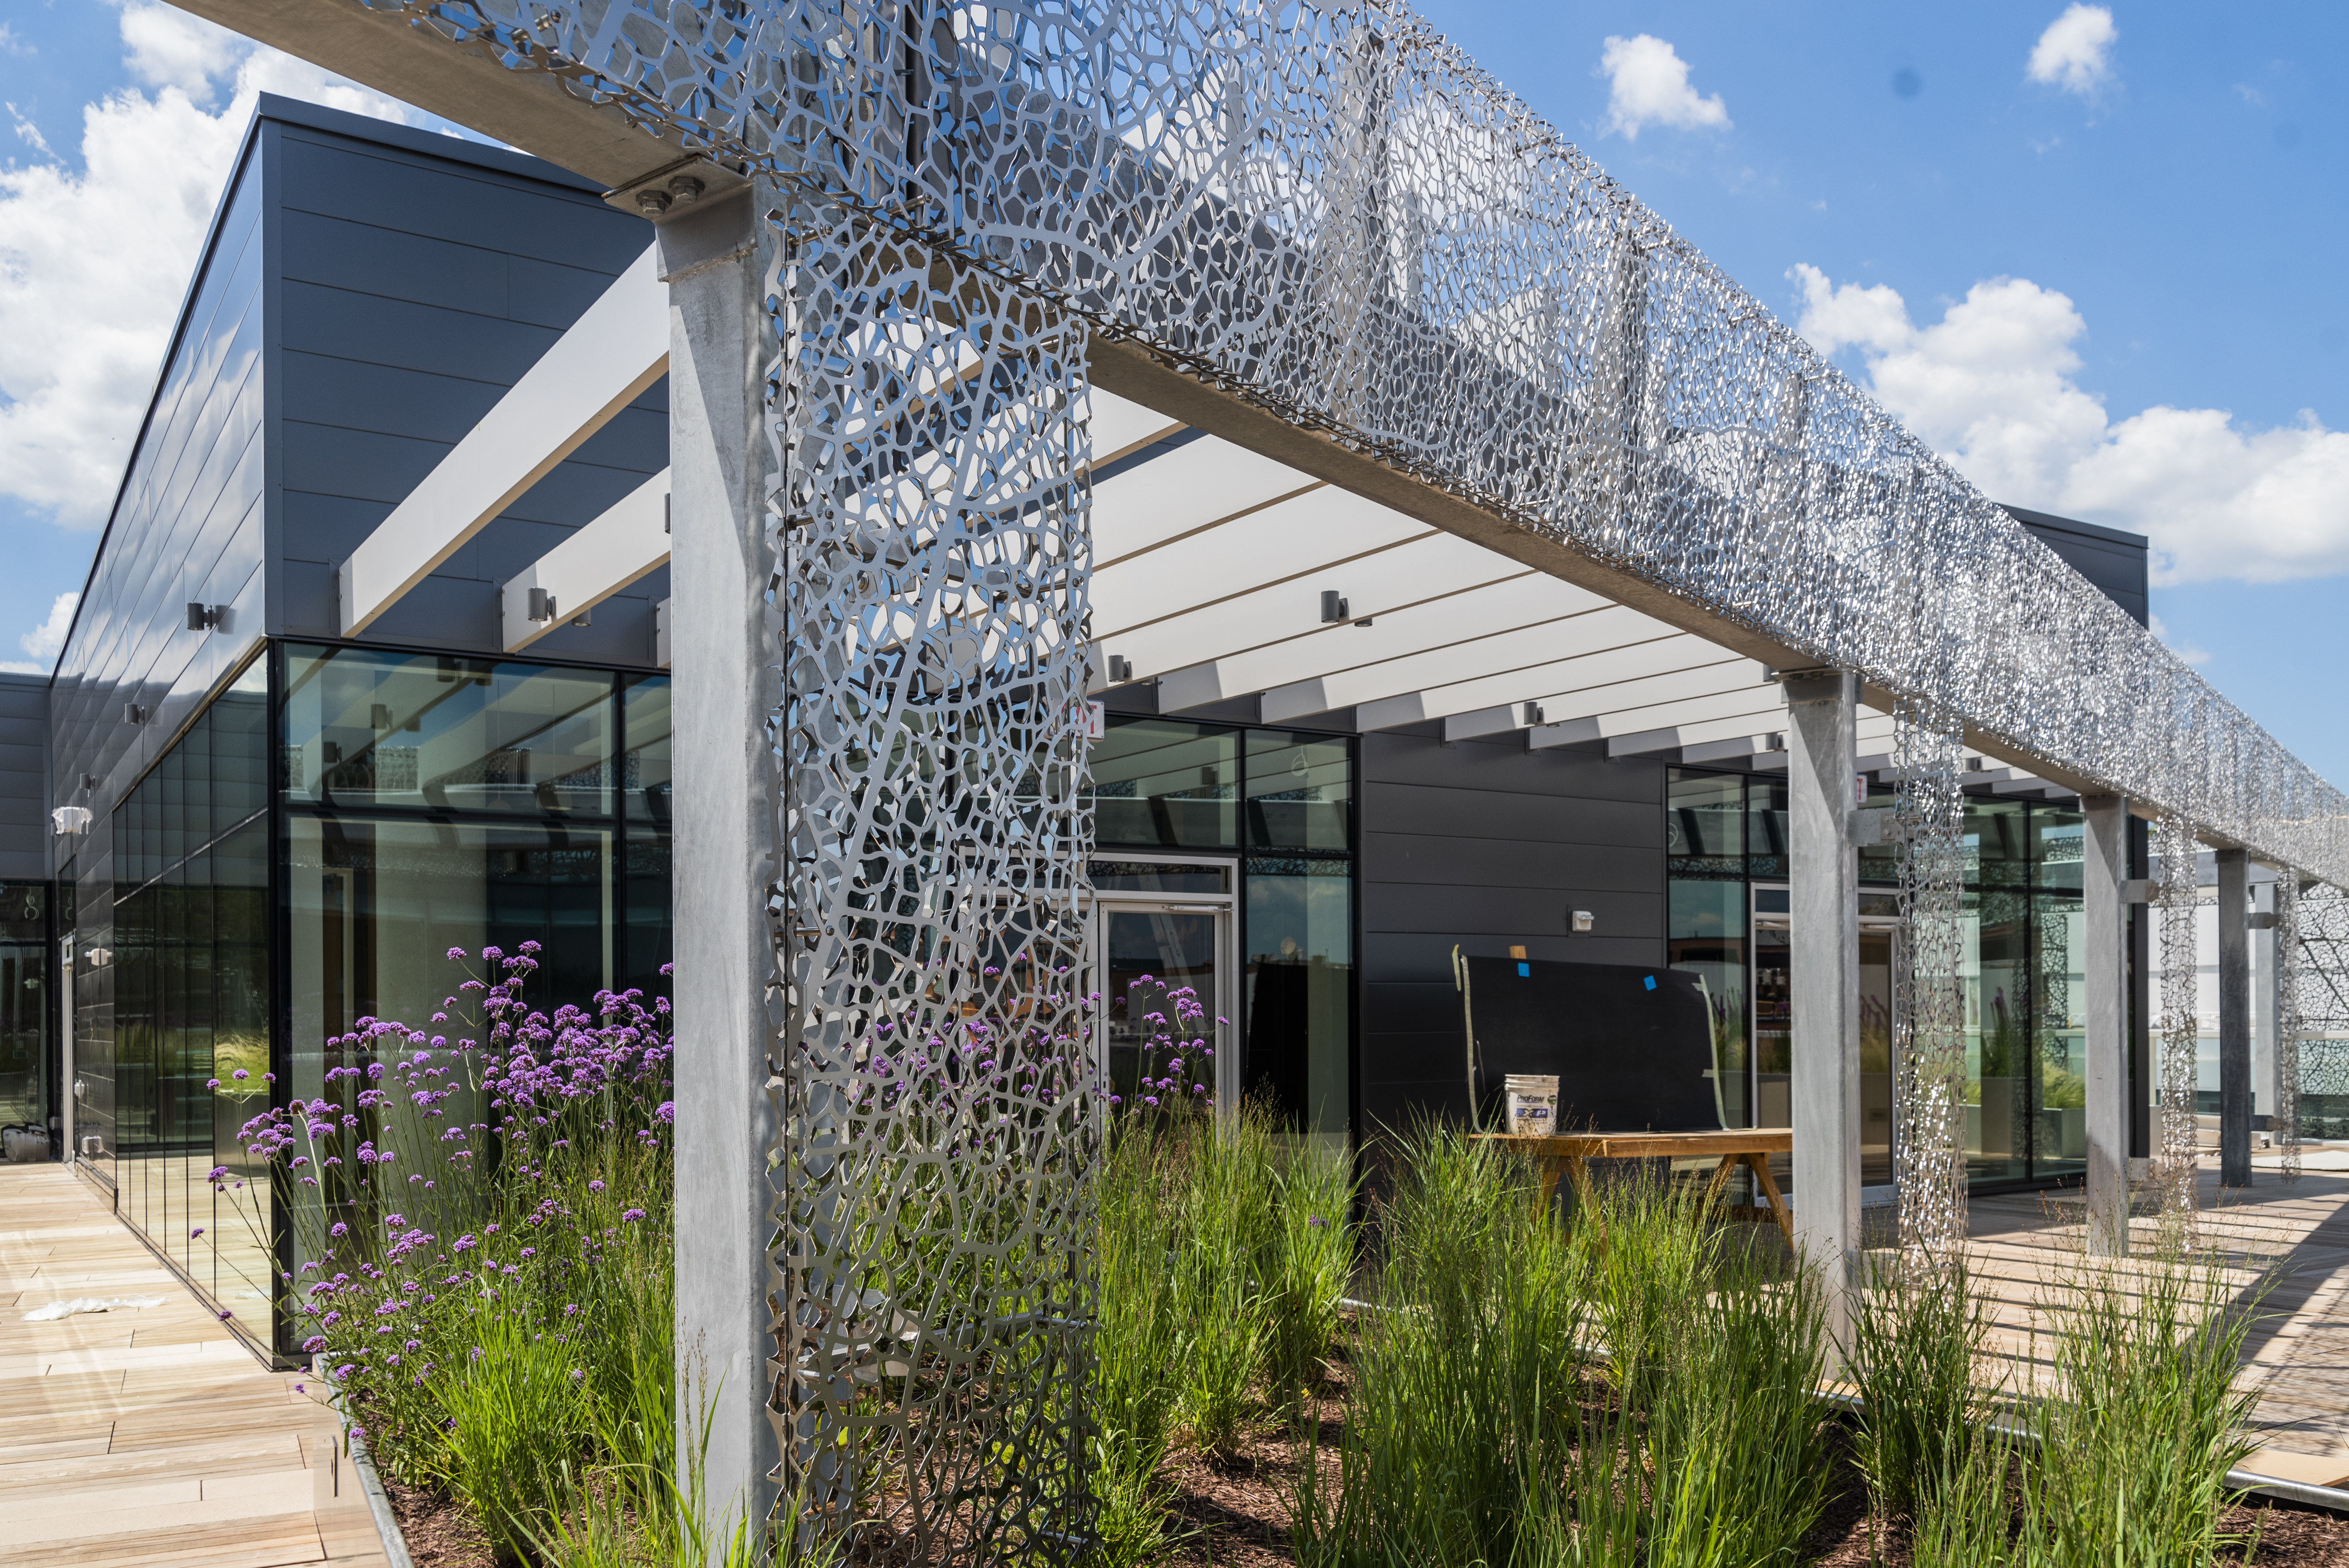 Landscaped rooftop terrace with integrated art screen by Jan Hendrix.